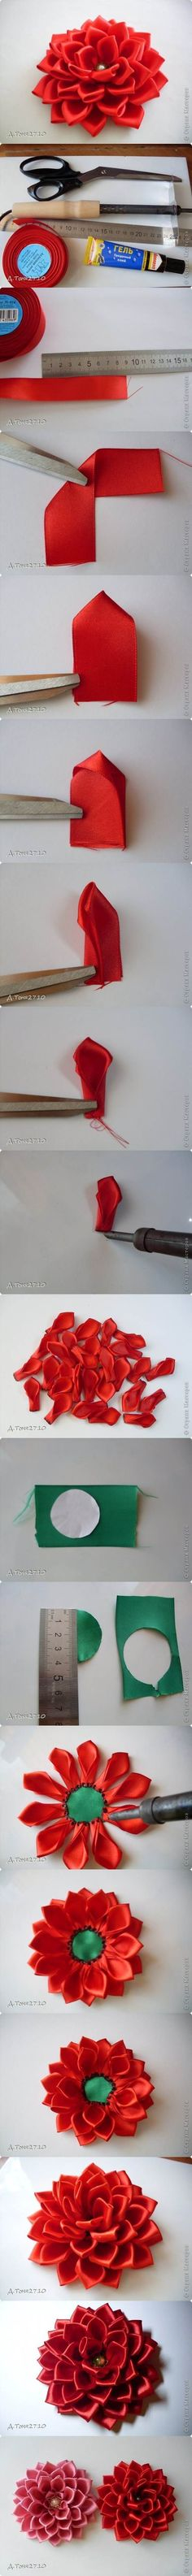 10 Ways to DIY Beautiful Artificial Dahlias DIY-Satin-Ribbon-Dahlia-Flowers 10 Ways to DIY Beautiful Artificial Dahlias Ways to DIY Beautiful Artificial Dahlias DIY-Satin-Ribbon-Dahlia-Flower Ribbon Art, Diy Ribbon, Fabric Ribbon, Ribbon Crafts, Flower Crafts, Diy Crafts, Ribbon Flower, Satin Flowers, Diy Flowers